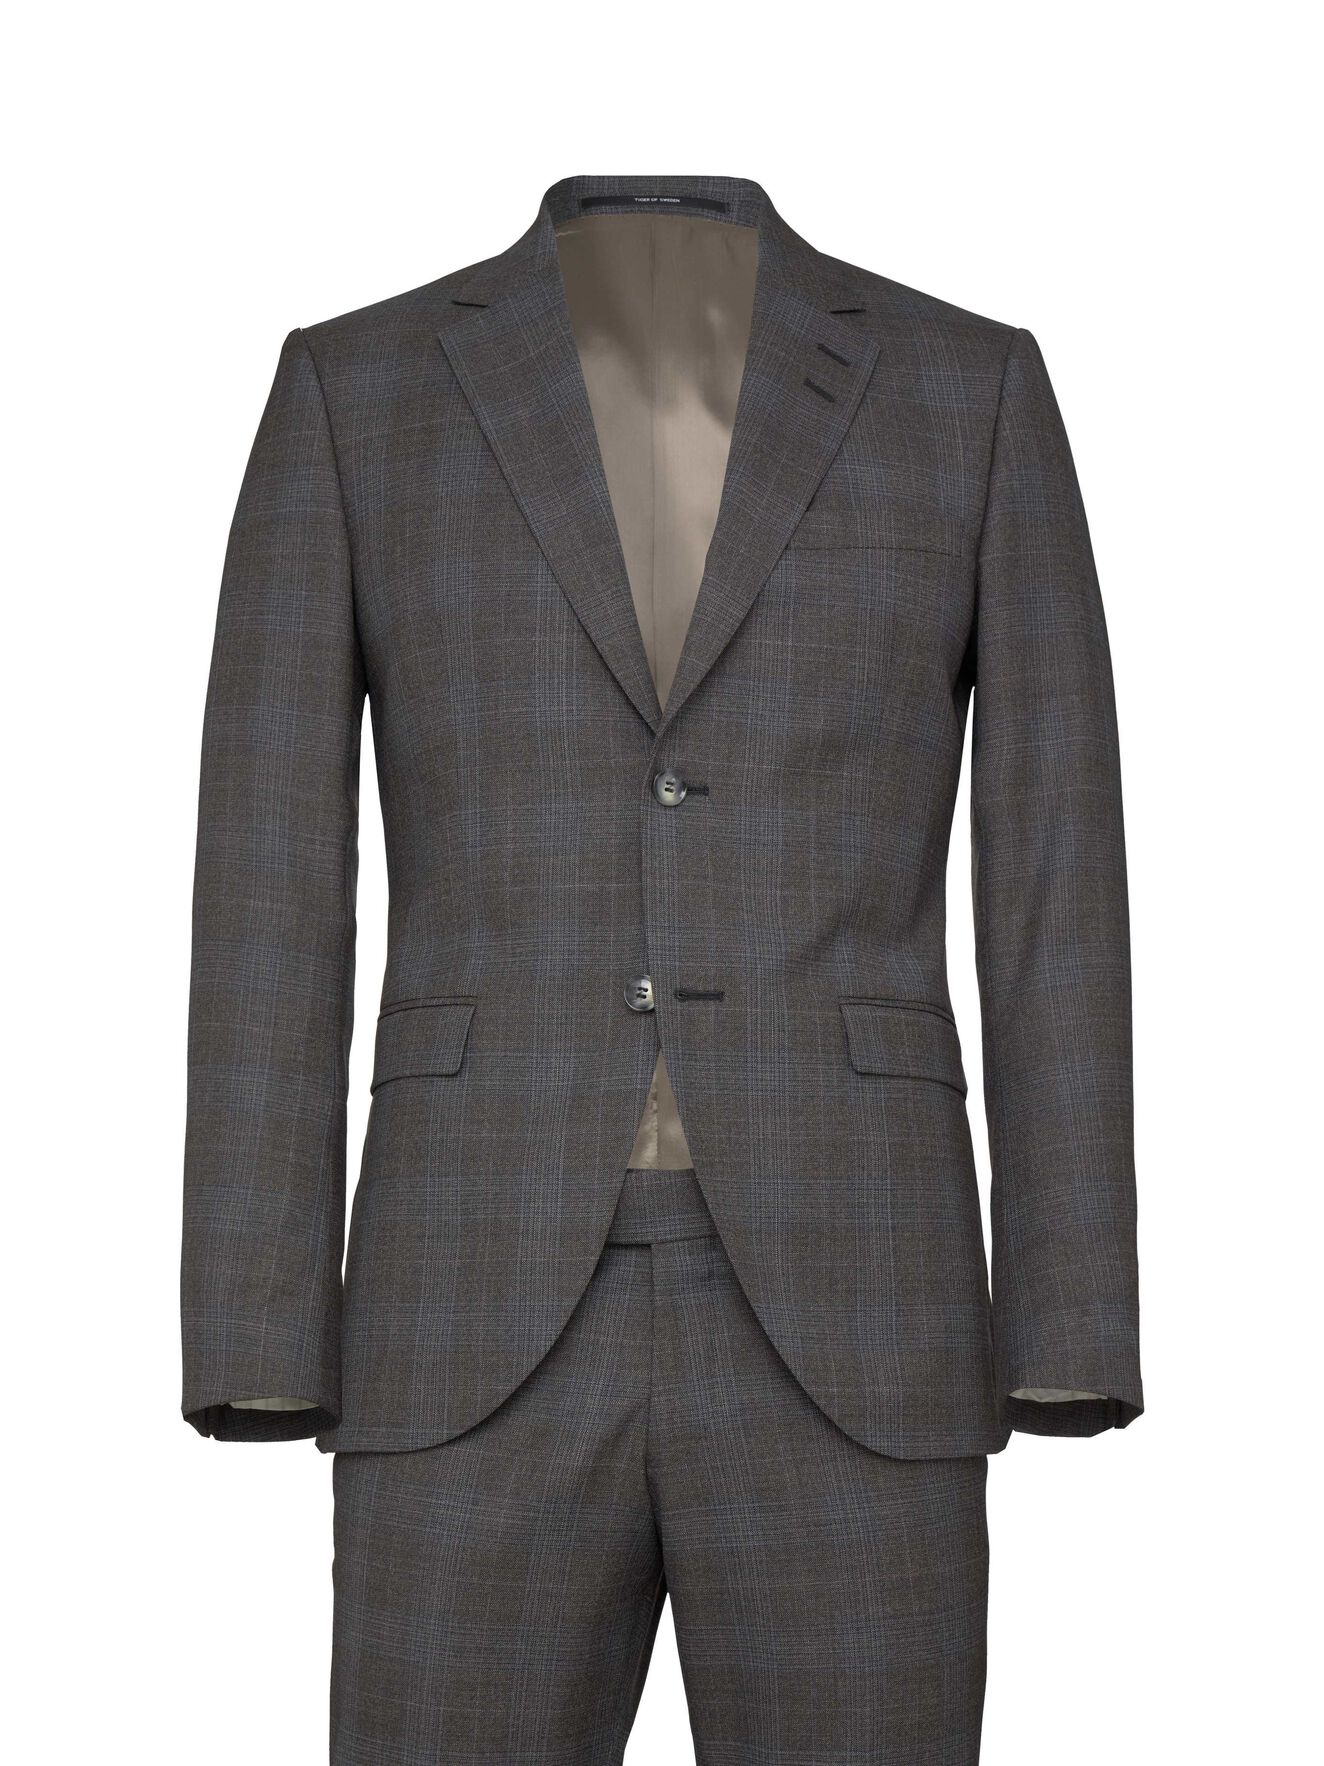 Lamonte Suit in Monument from Tiger of Sweden